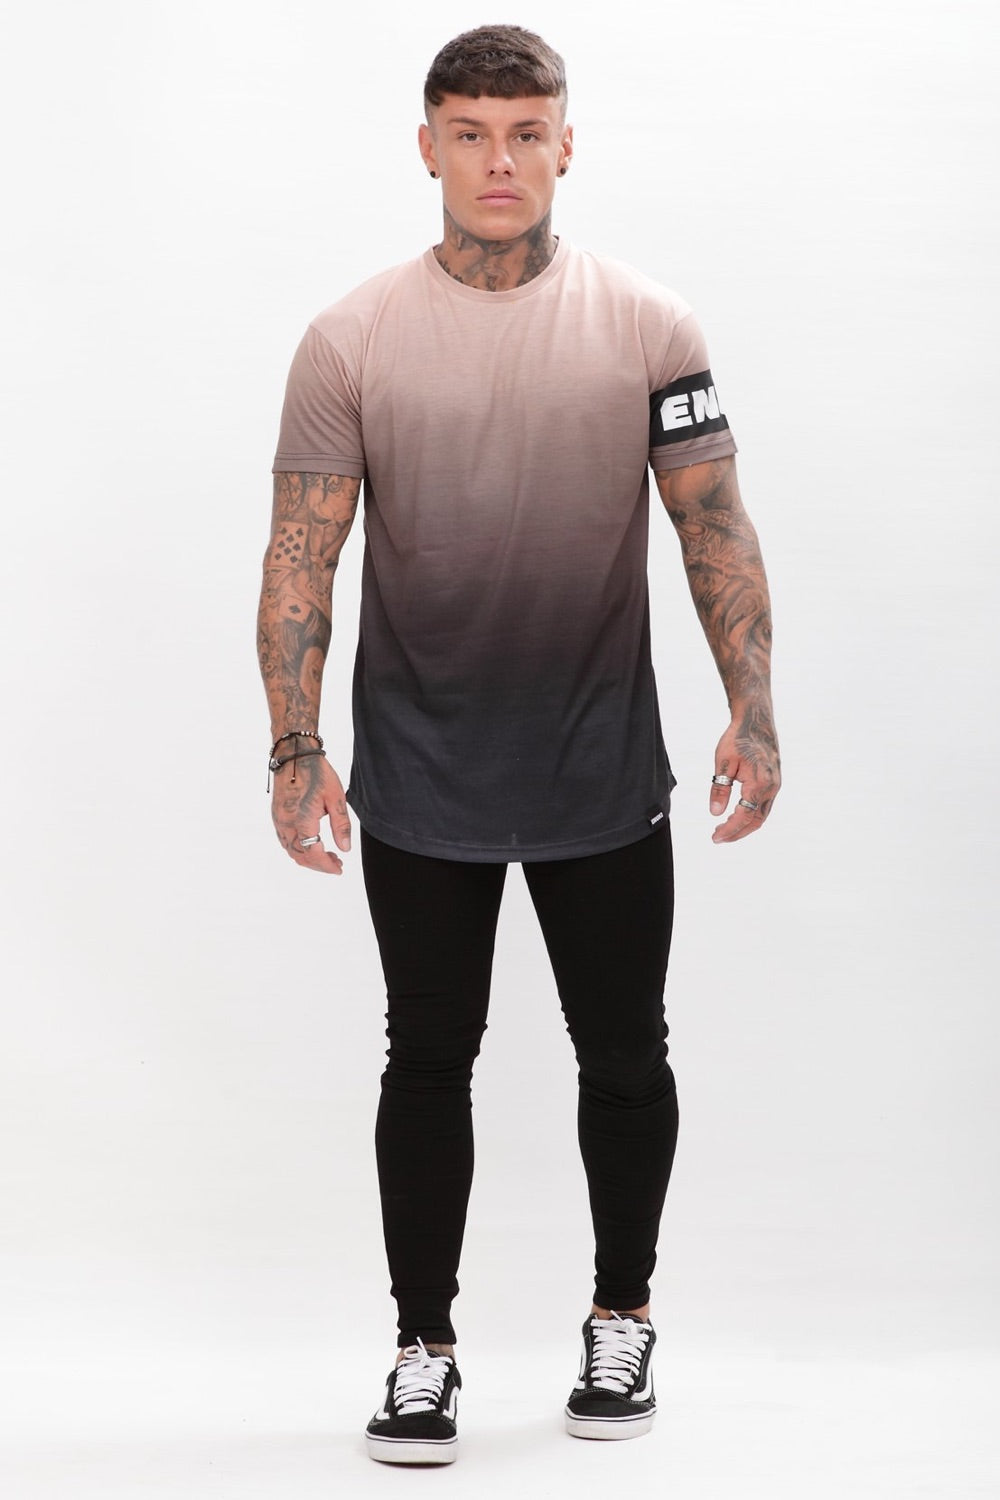 Enuki London Sapporo Dip Dye T-Shirt  - Hazelnut/Black - 1